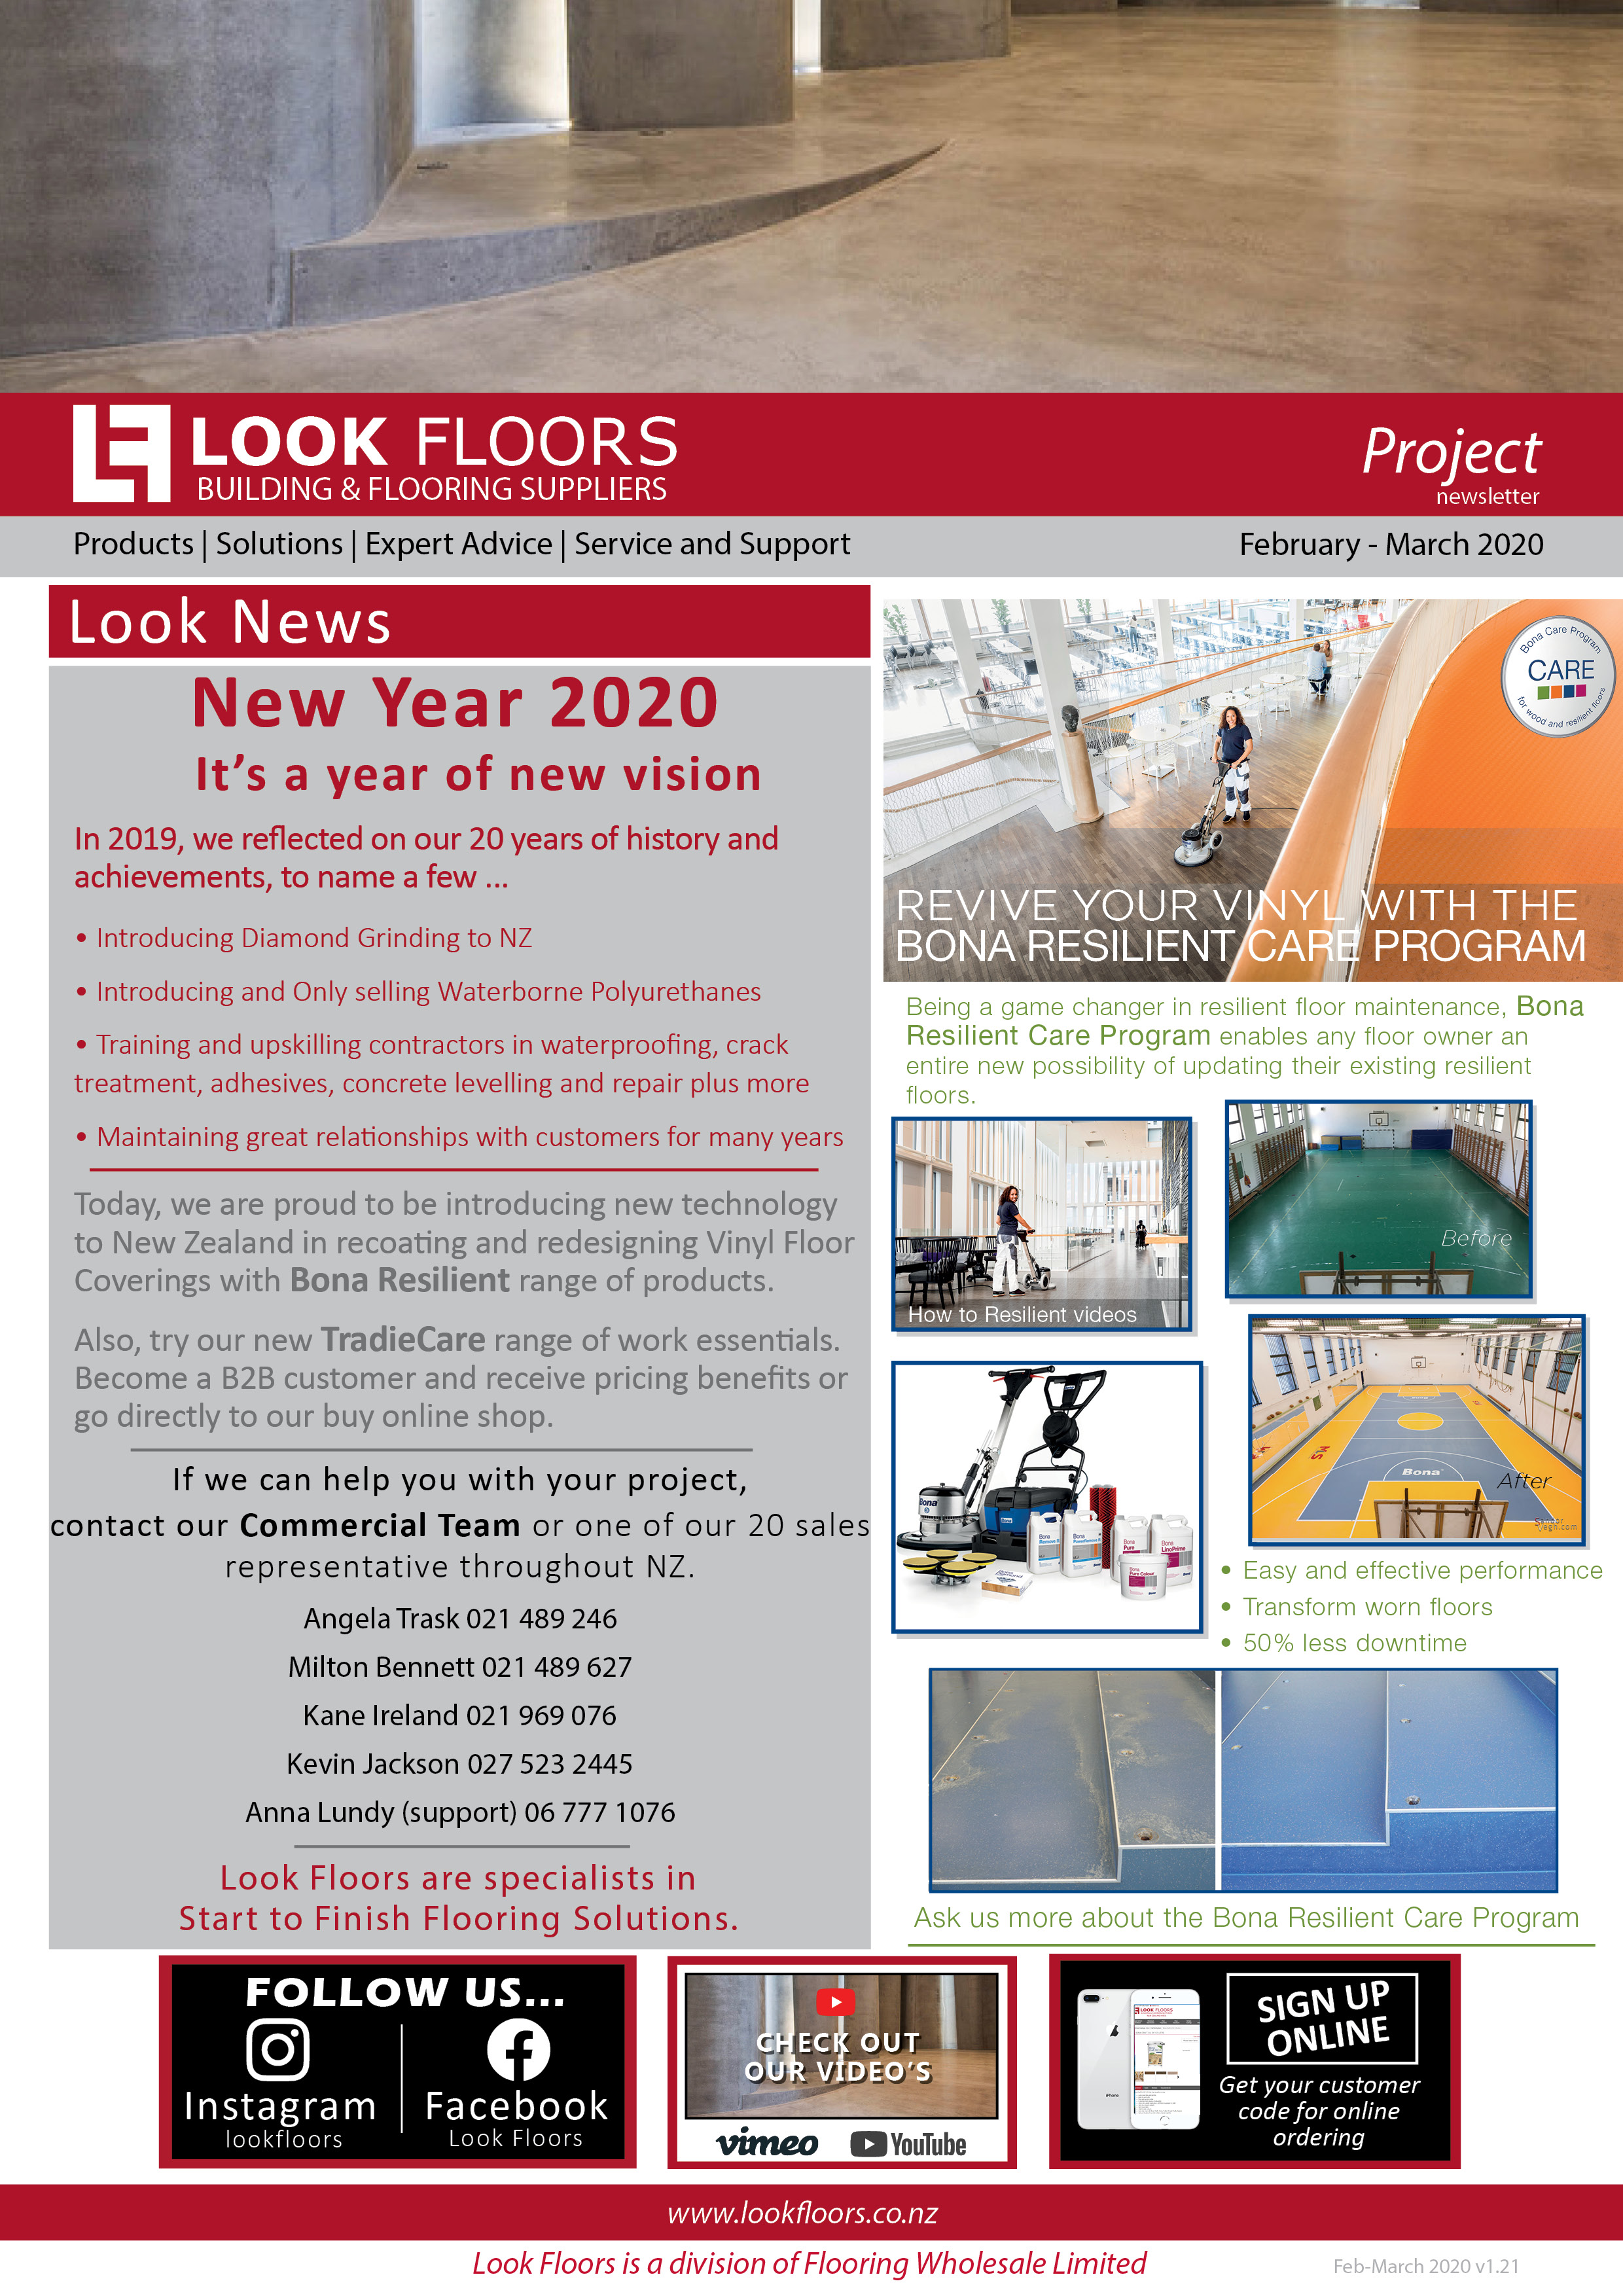 Look Floors Project Newsletter February - March 2020